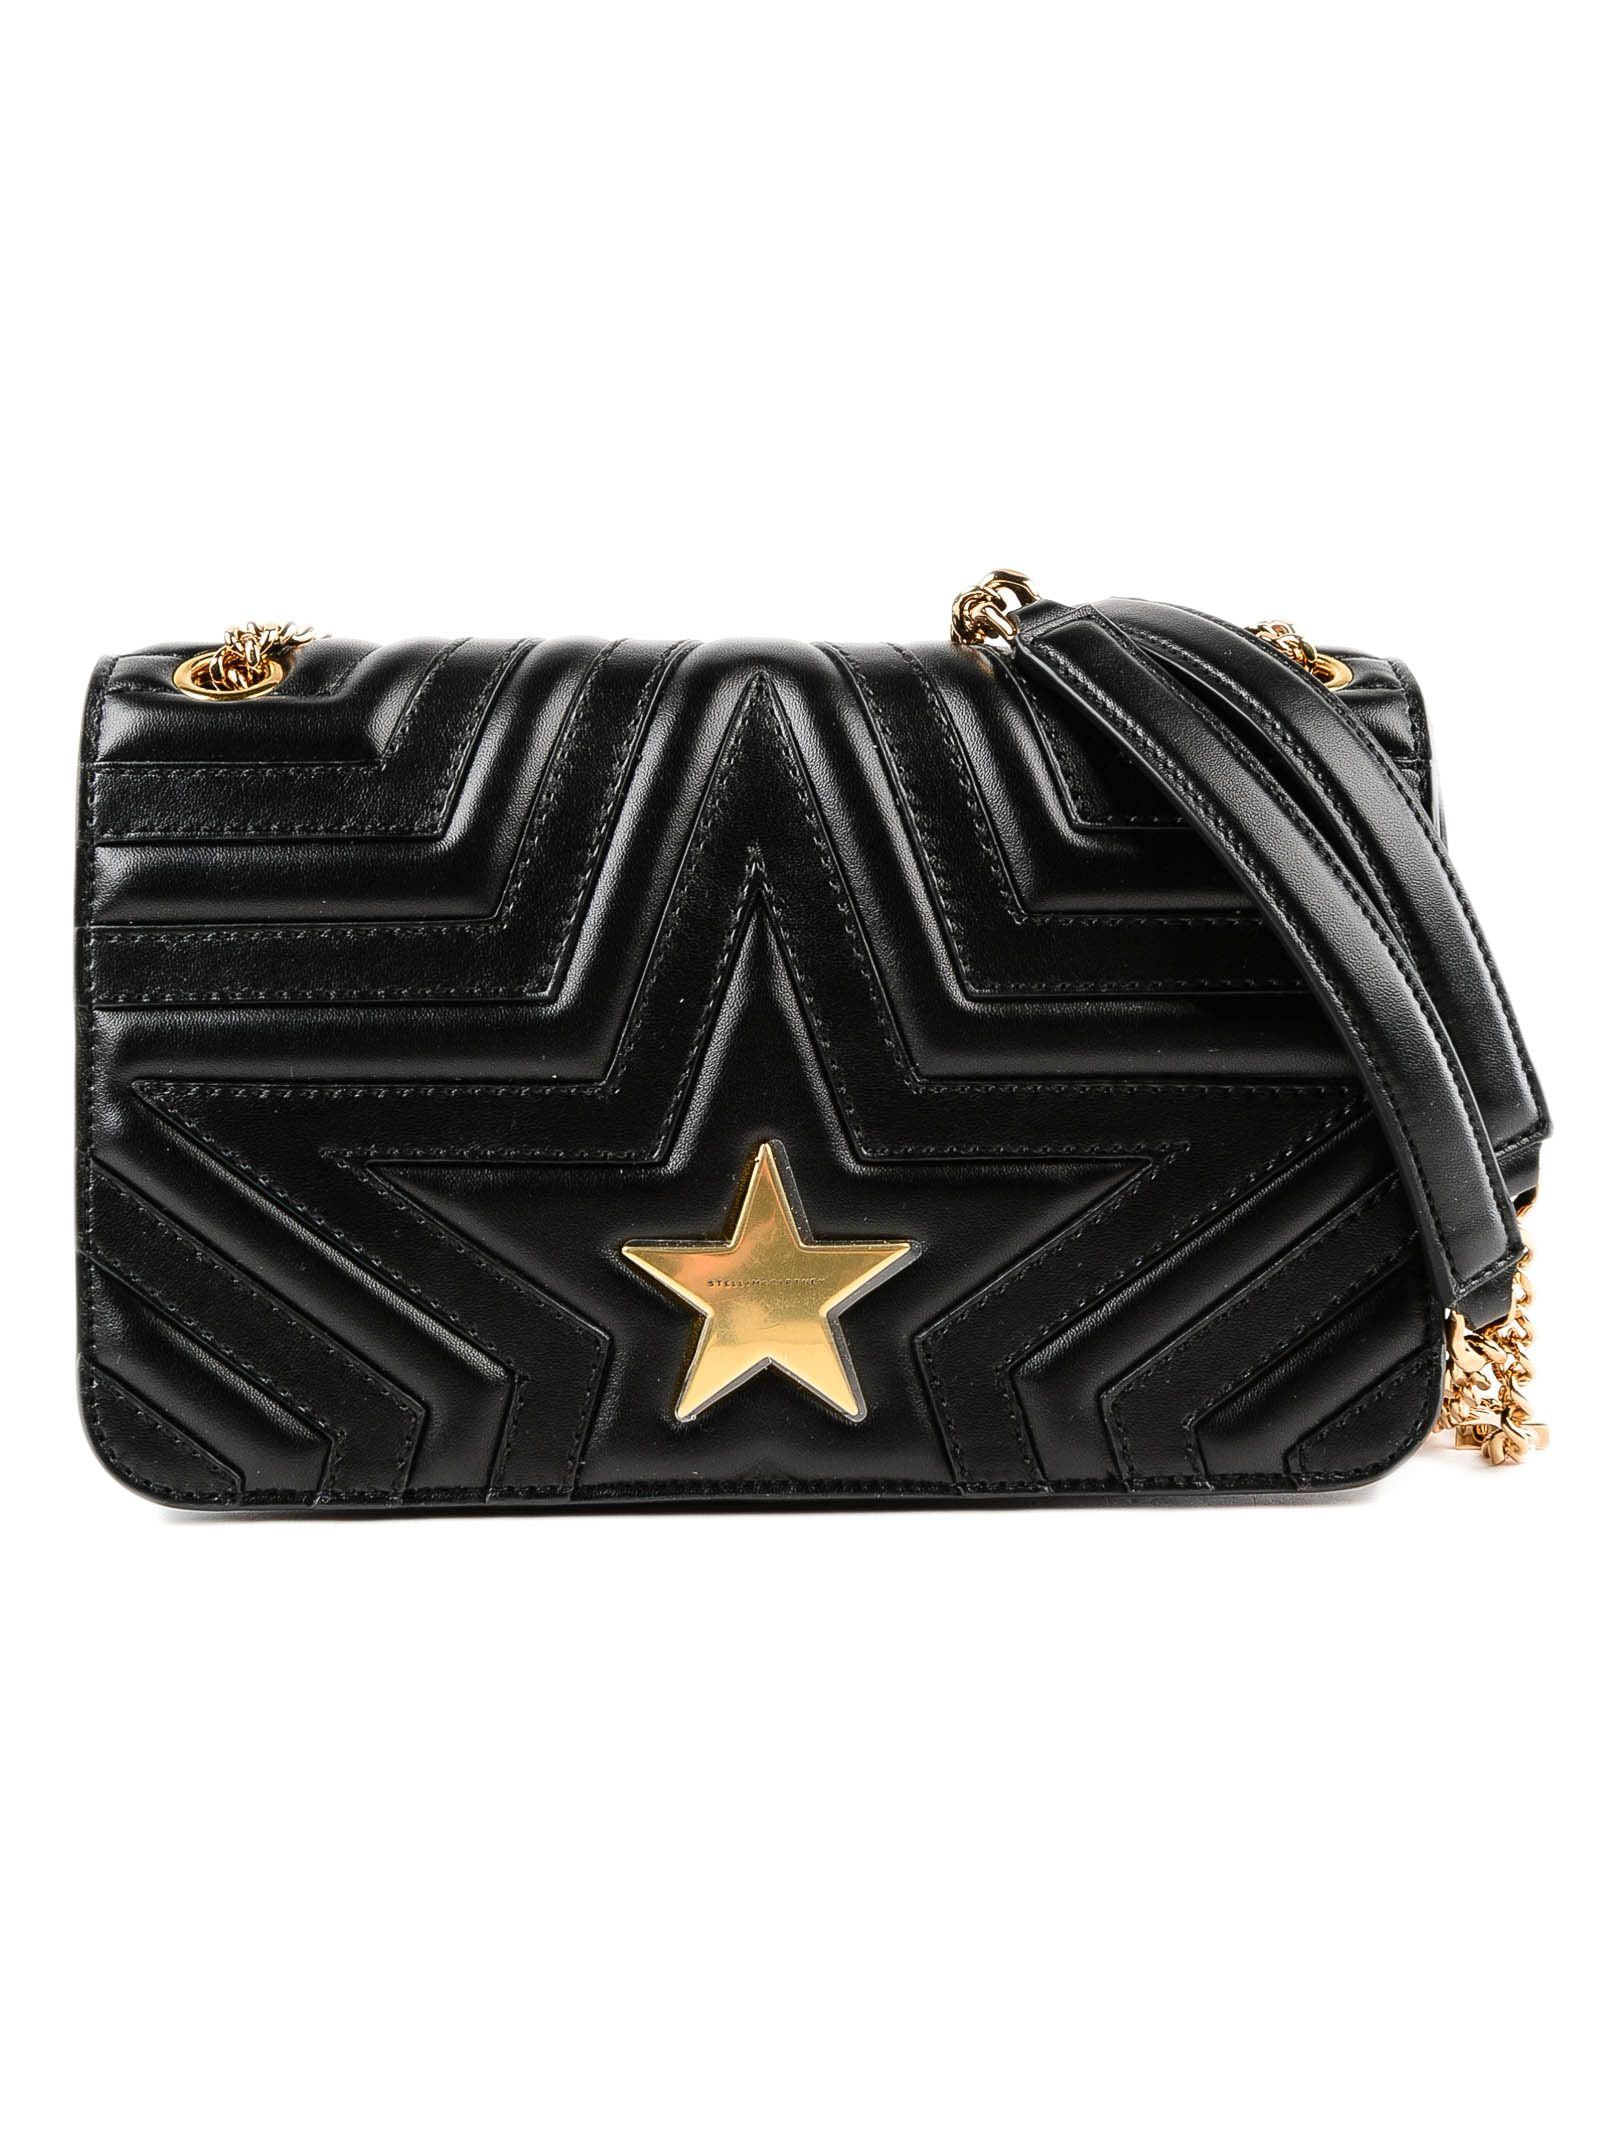 MEDIUM FLAP STELLA STAR